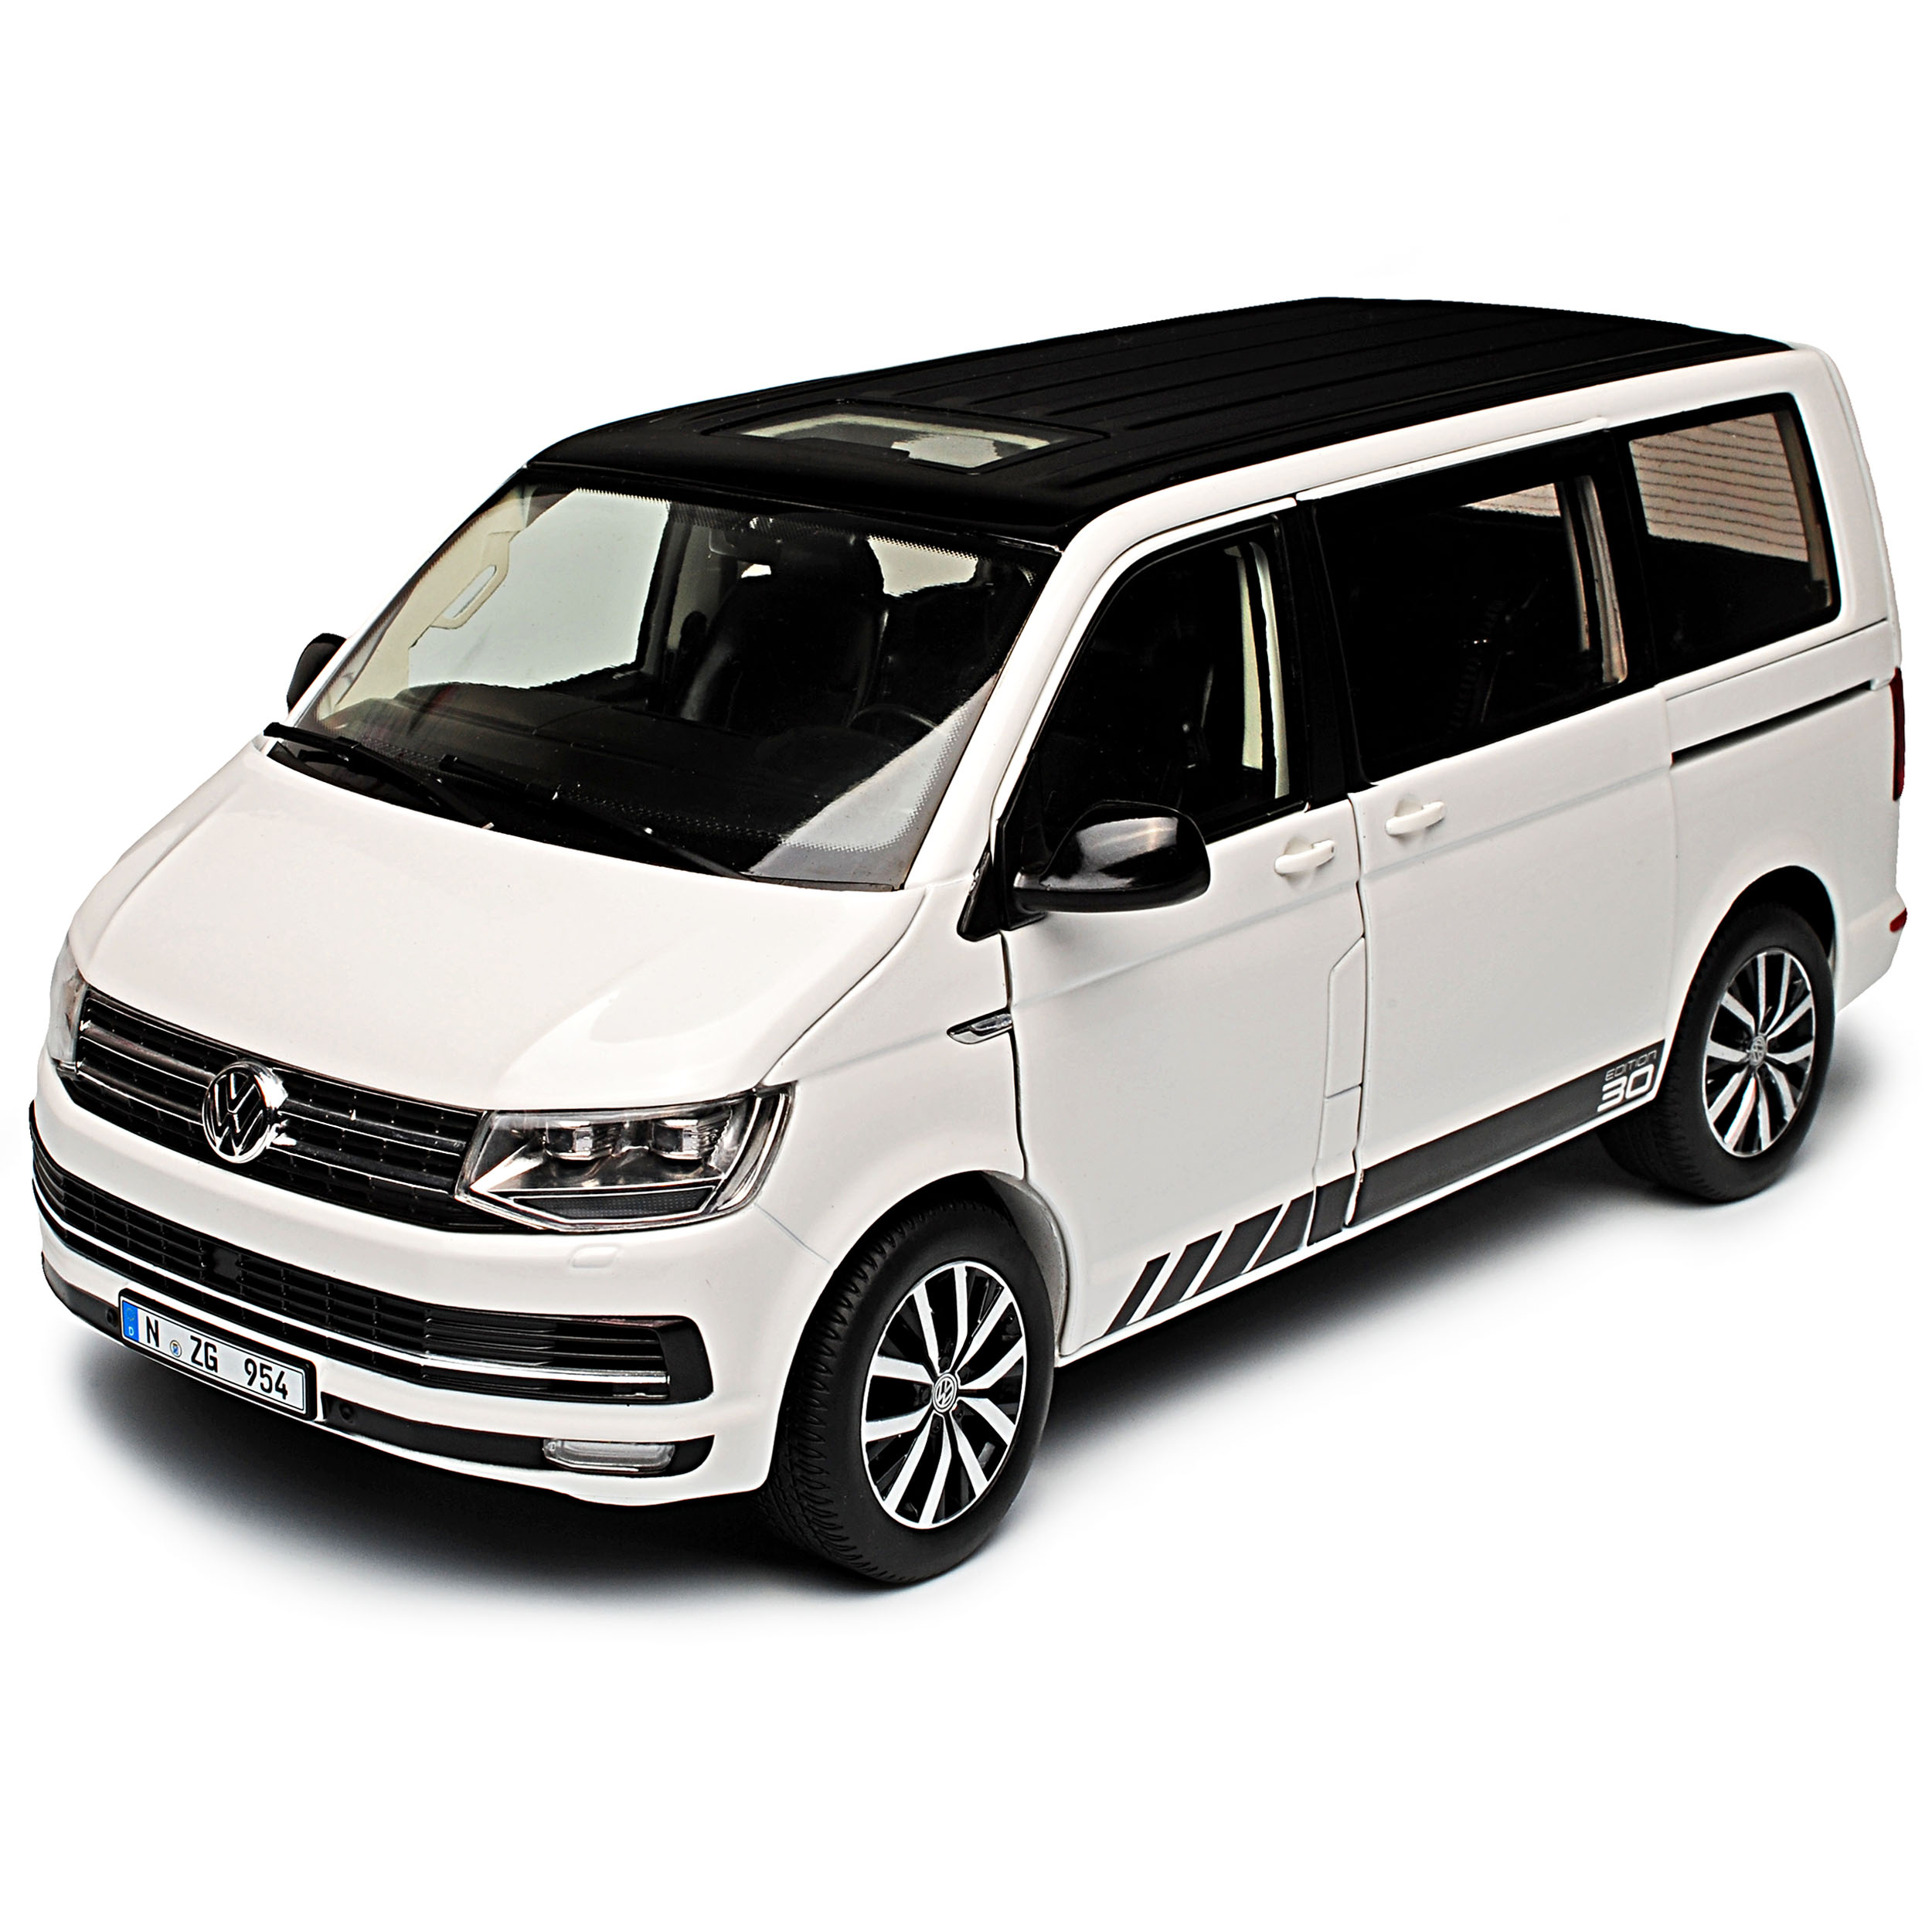 vw volkswagen t6 multivan highline personen transporter weiss t5 ab 2 facelif ebay. Black Bedroom Furniture Sets. Home Design Ideas